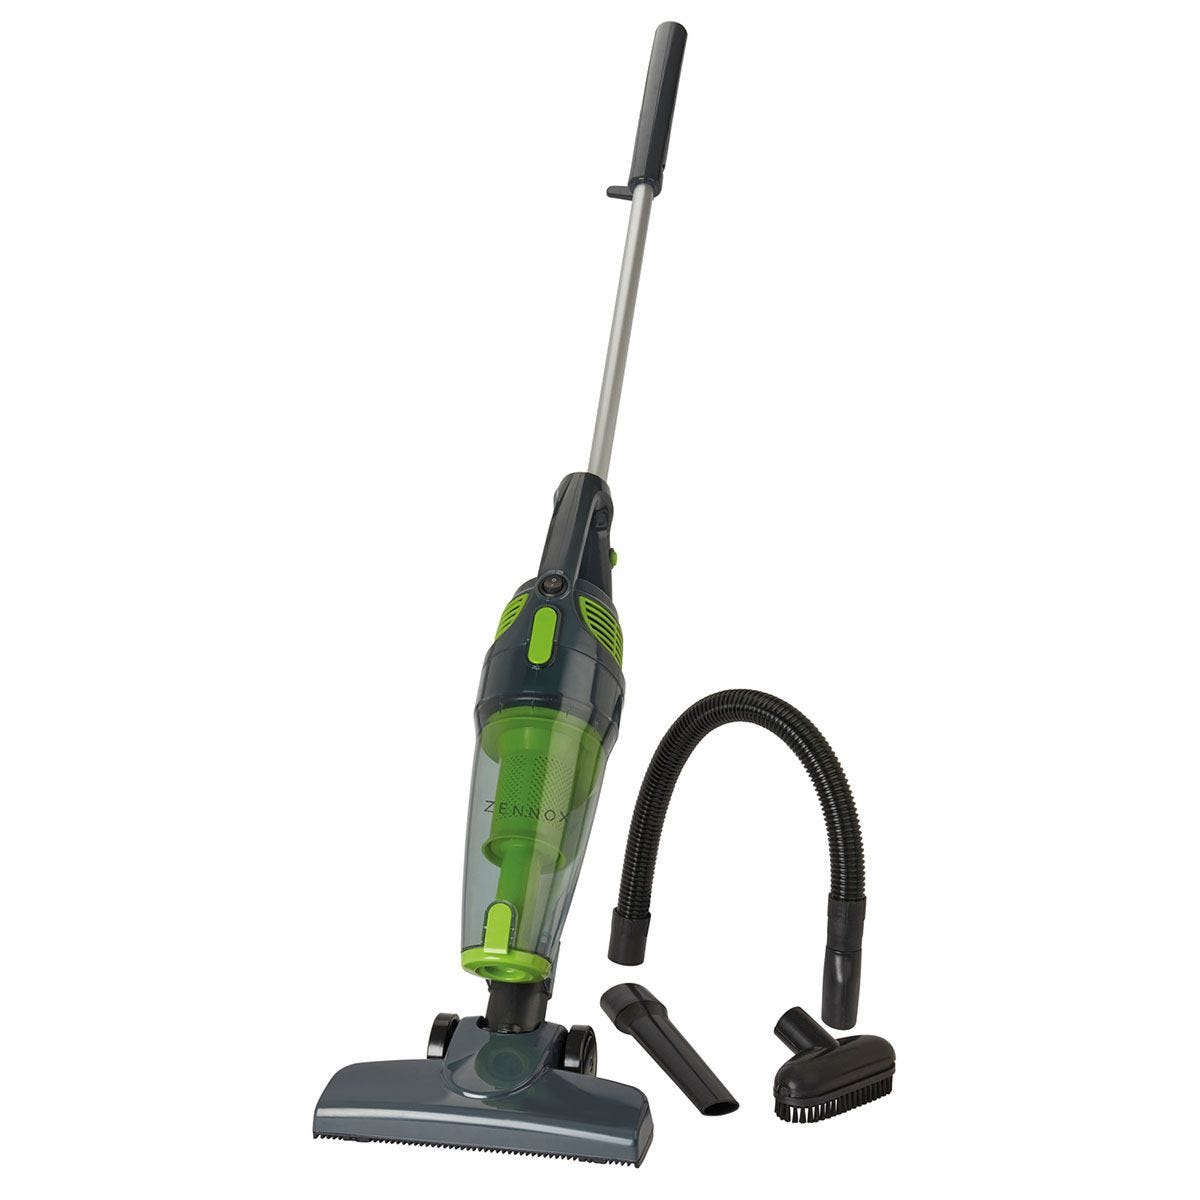 Zennox G4556 800W Stick Vacuum Cleaner with Accessories – Green/Grey